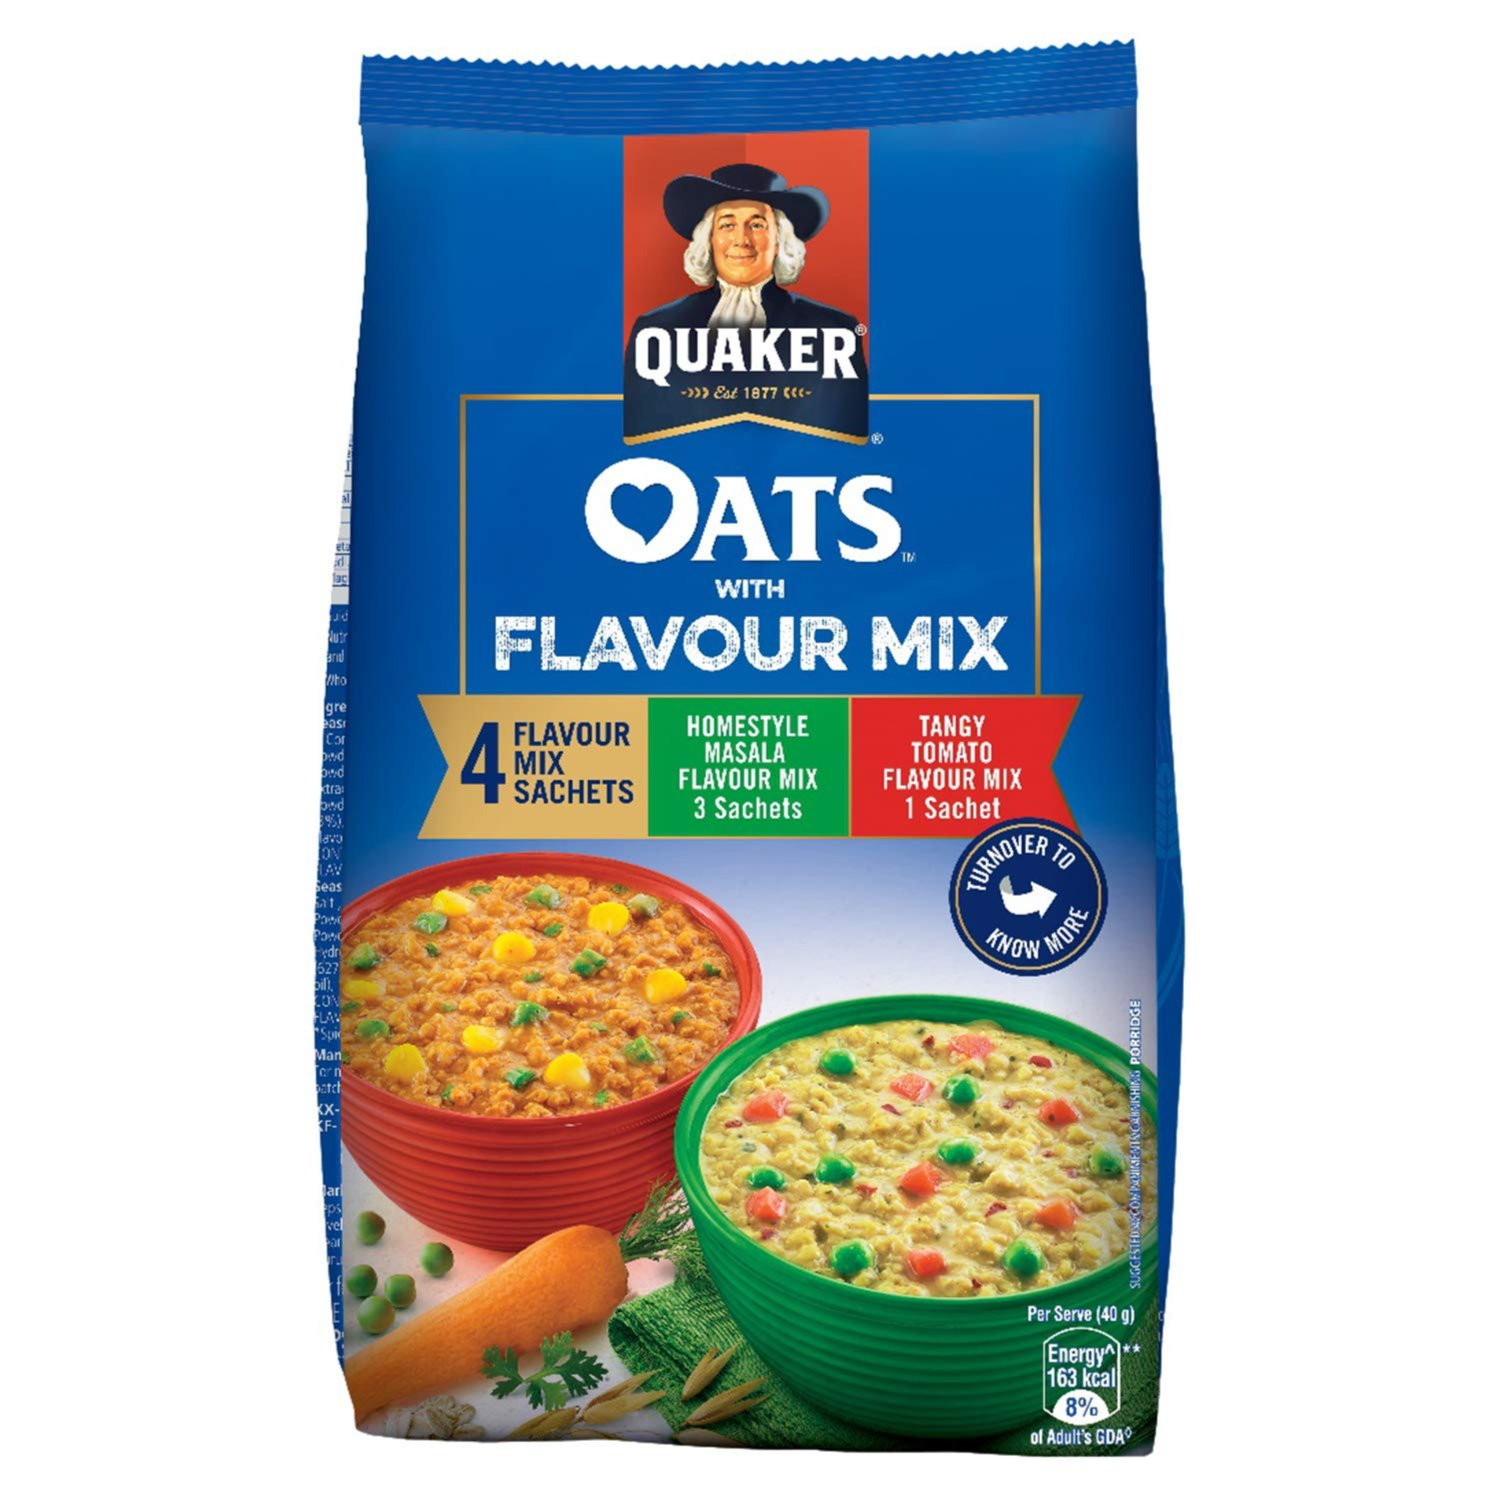 Quaker Oats with Flavour Mix, 200gm : Amazon.in: Grocery & Gourmet Foods